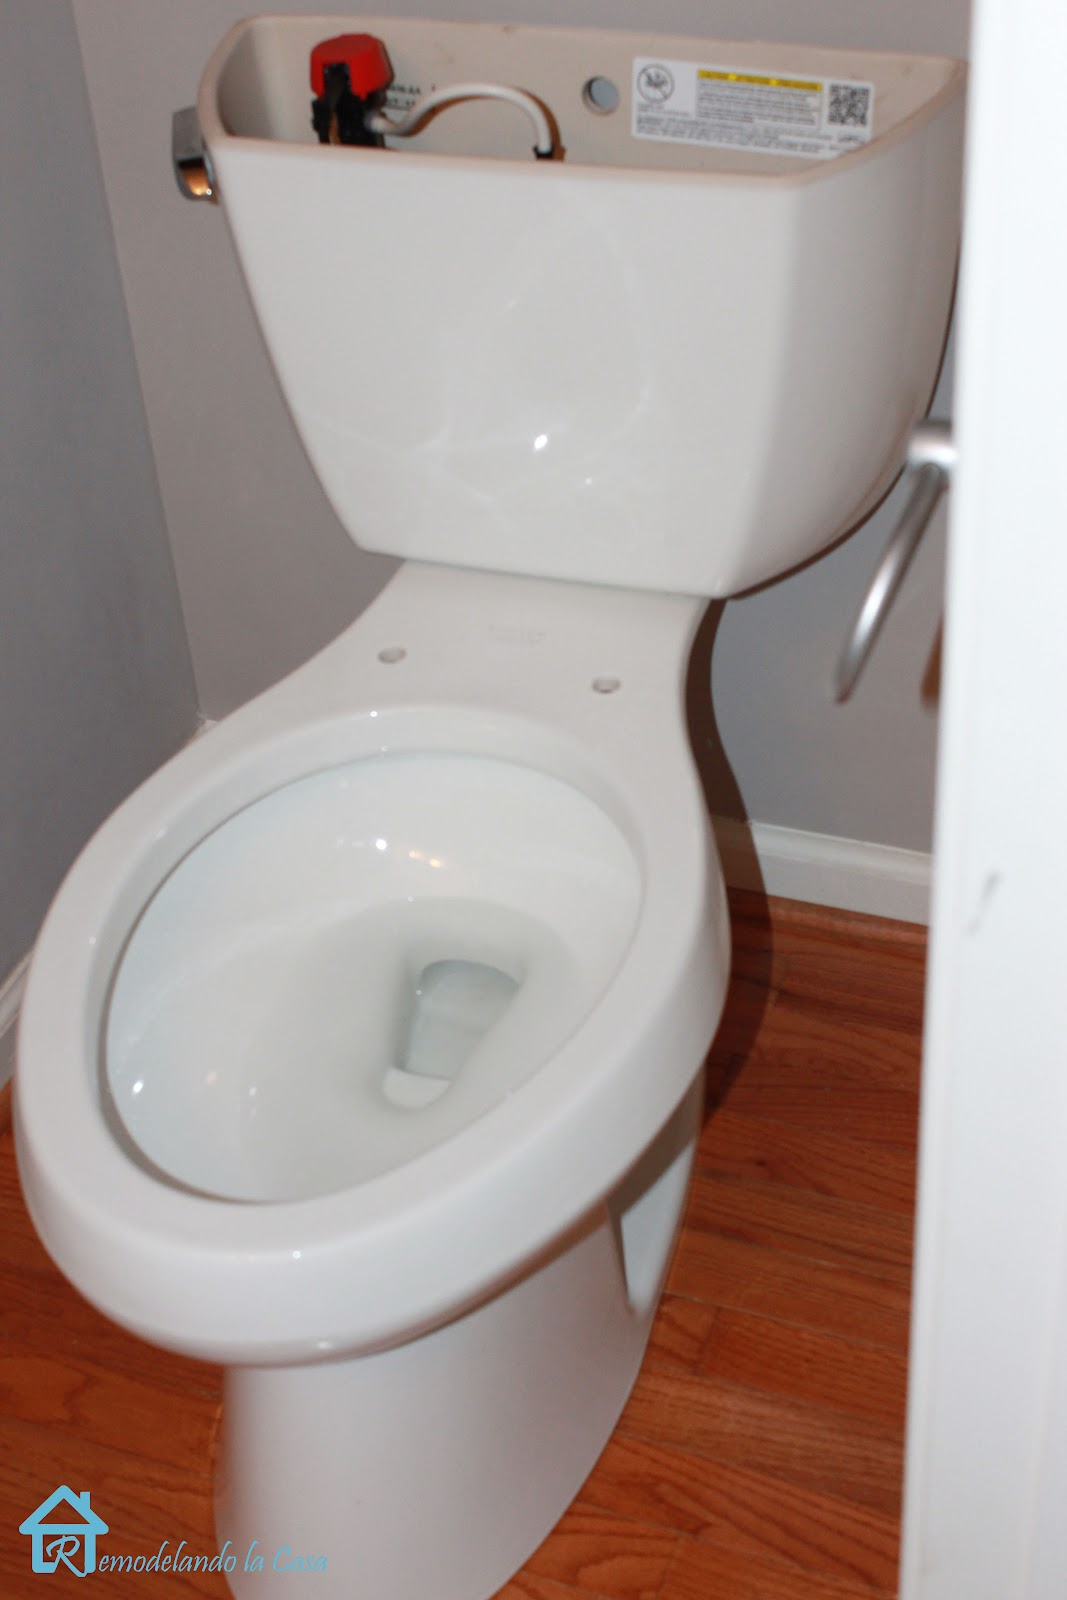 our old toilet was already installed with a flexible supply line we reattached it to the new toilet